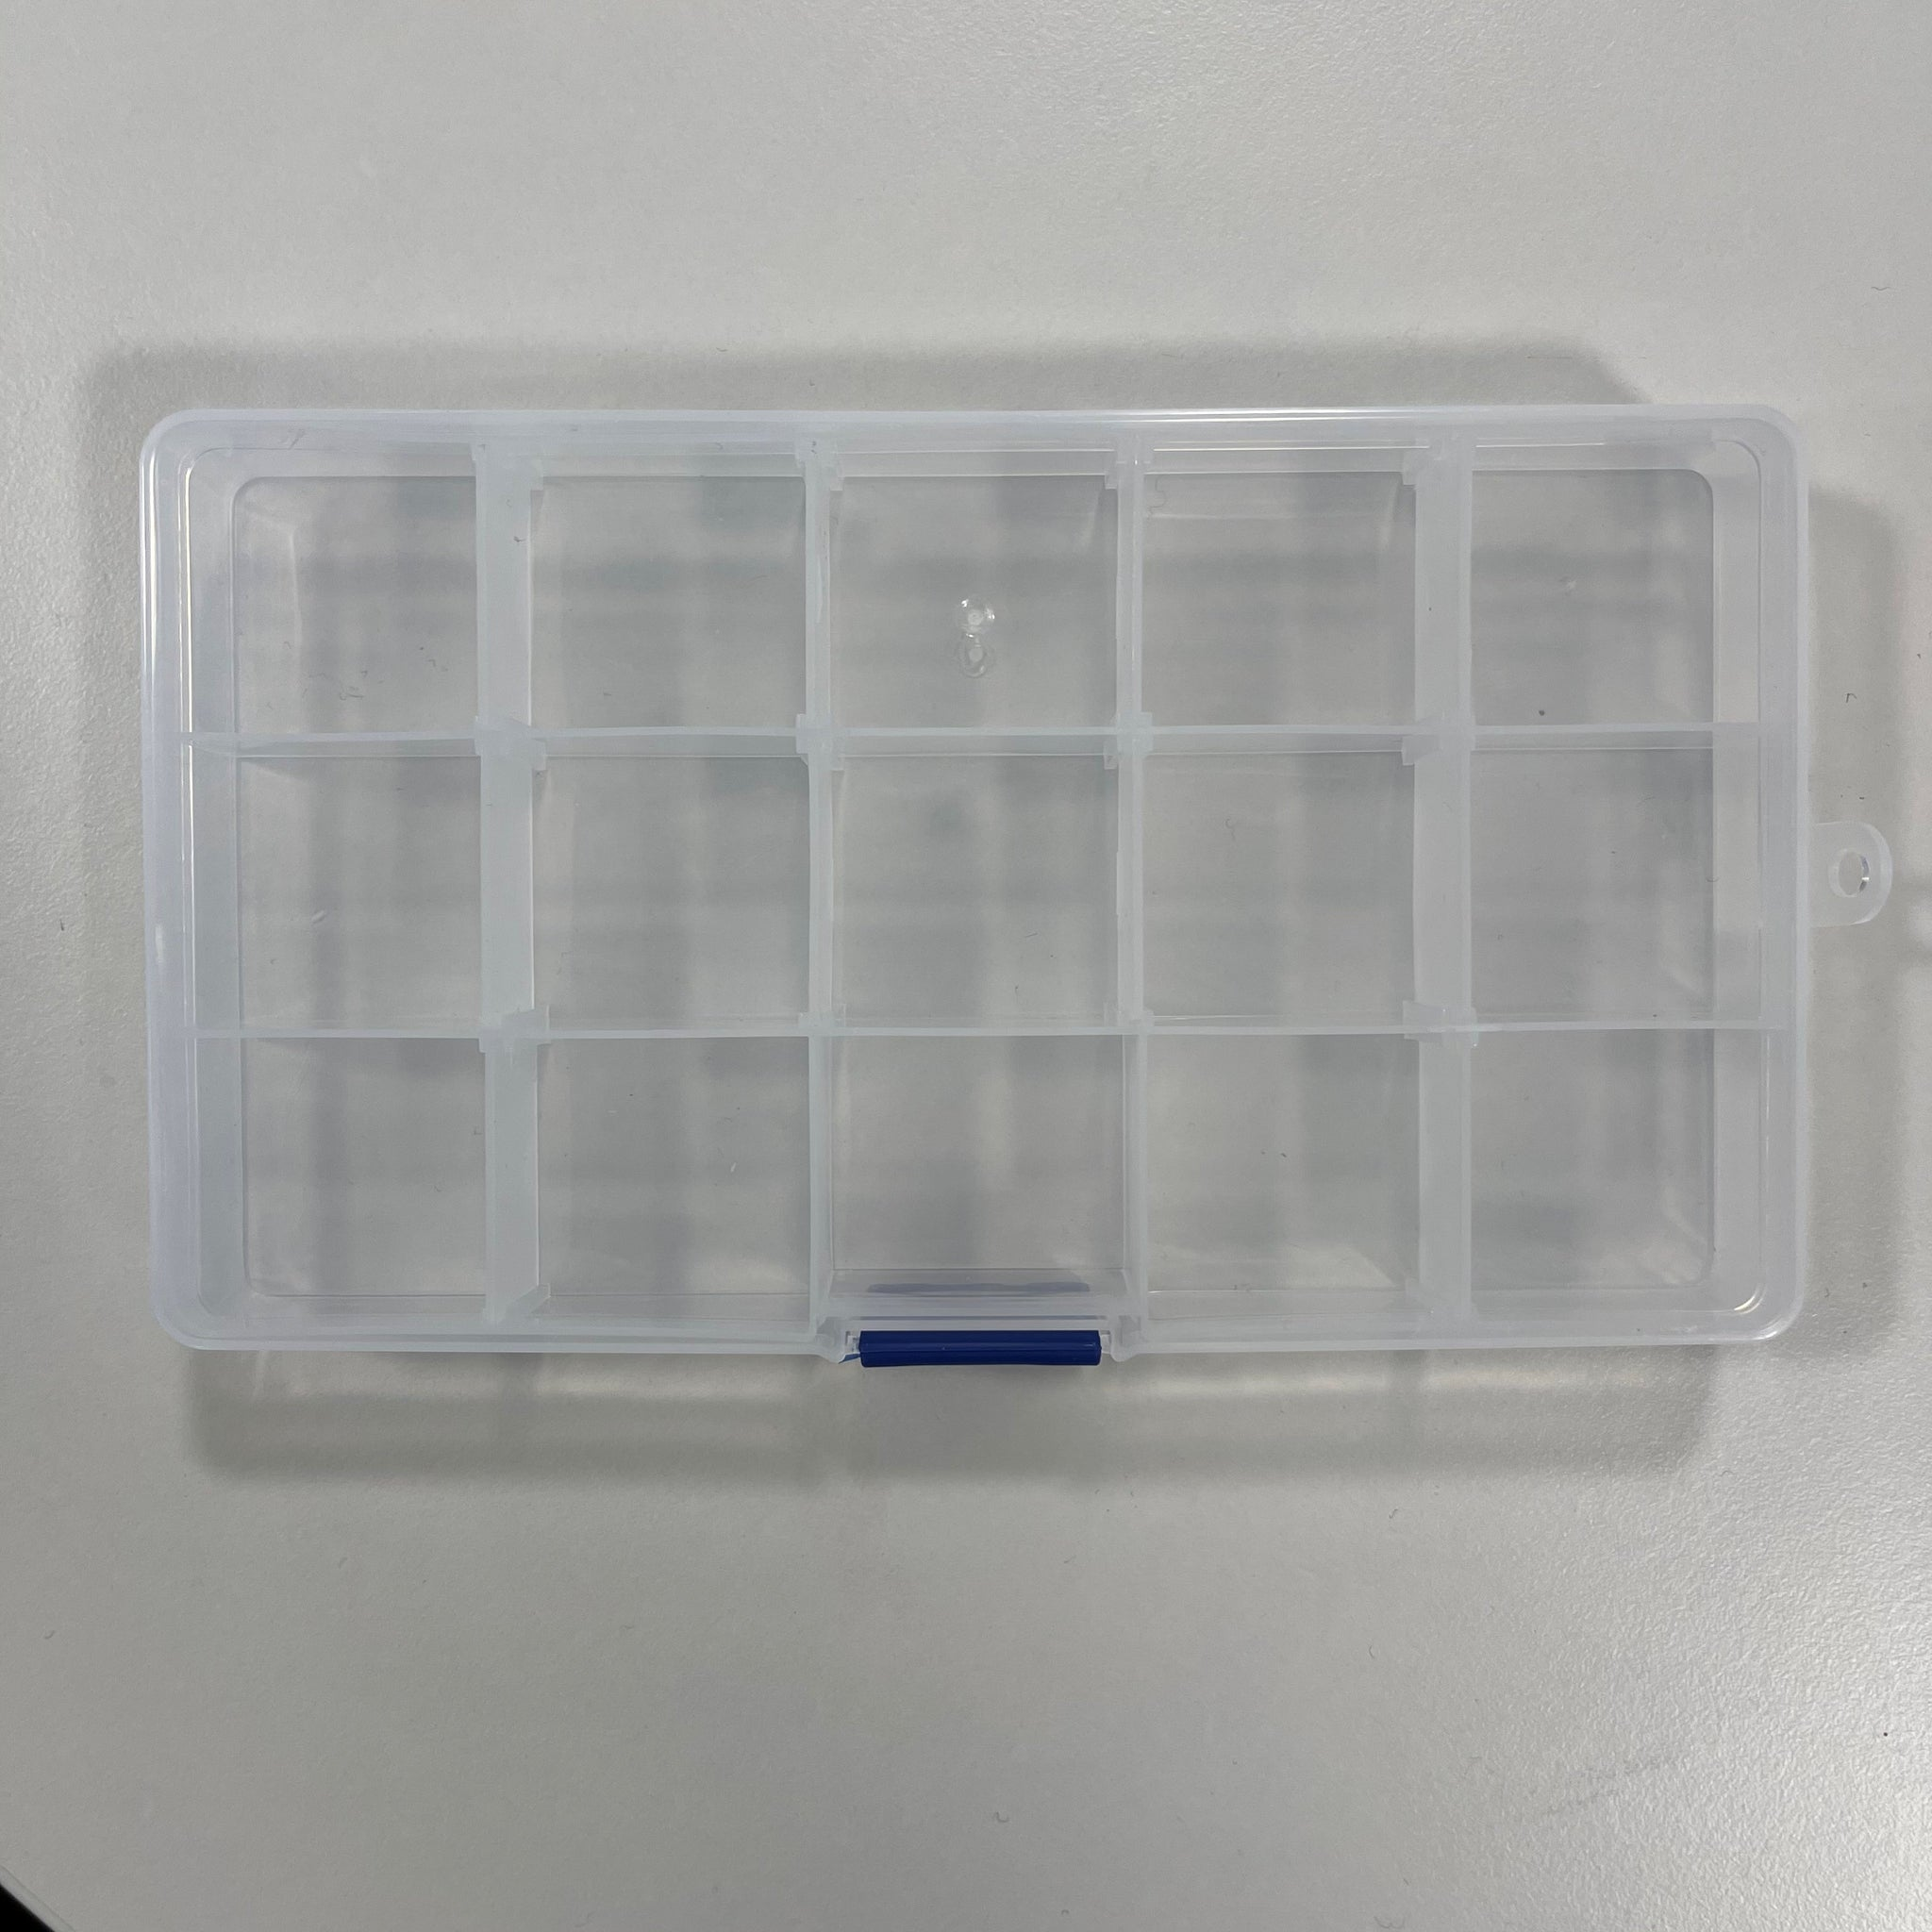 Storage Box with 15 compartments for Bobbins or Sewing Feet